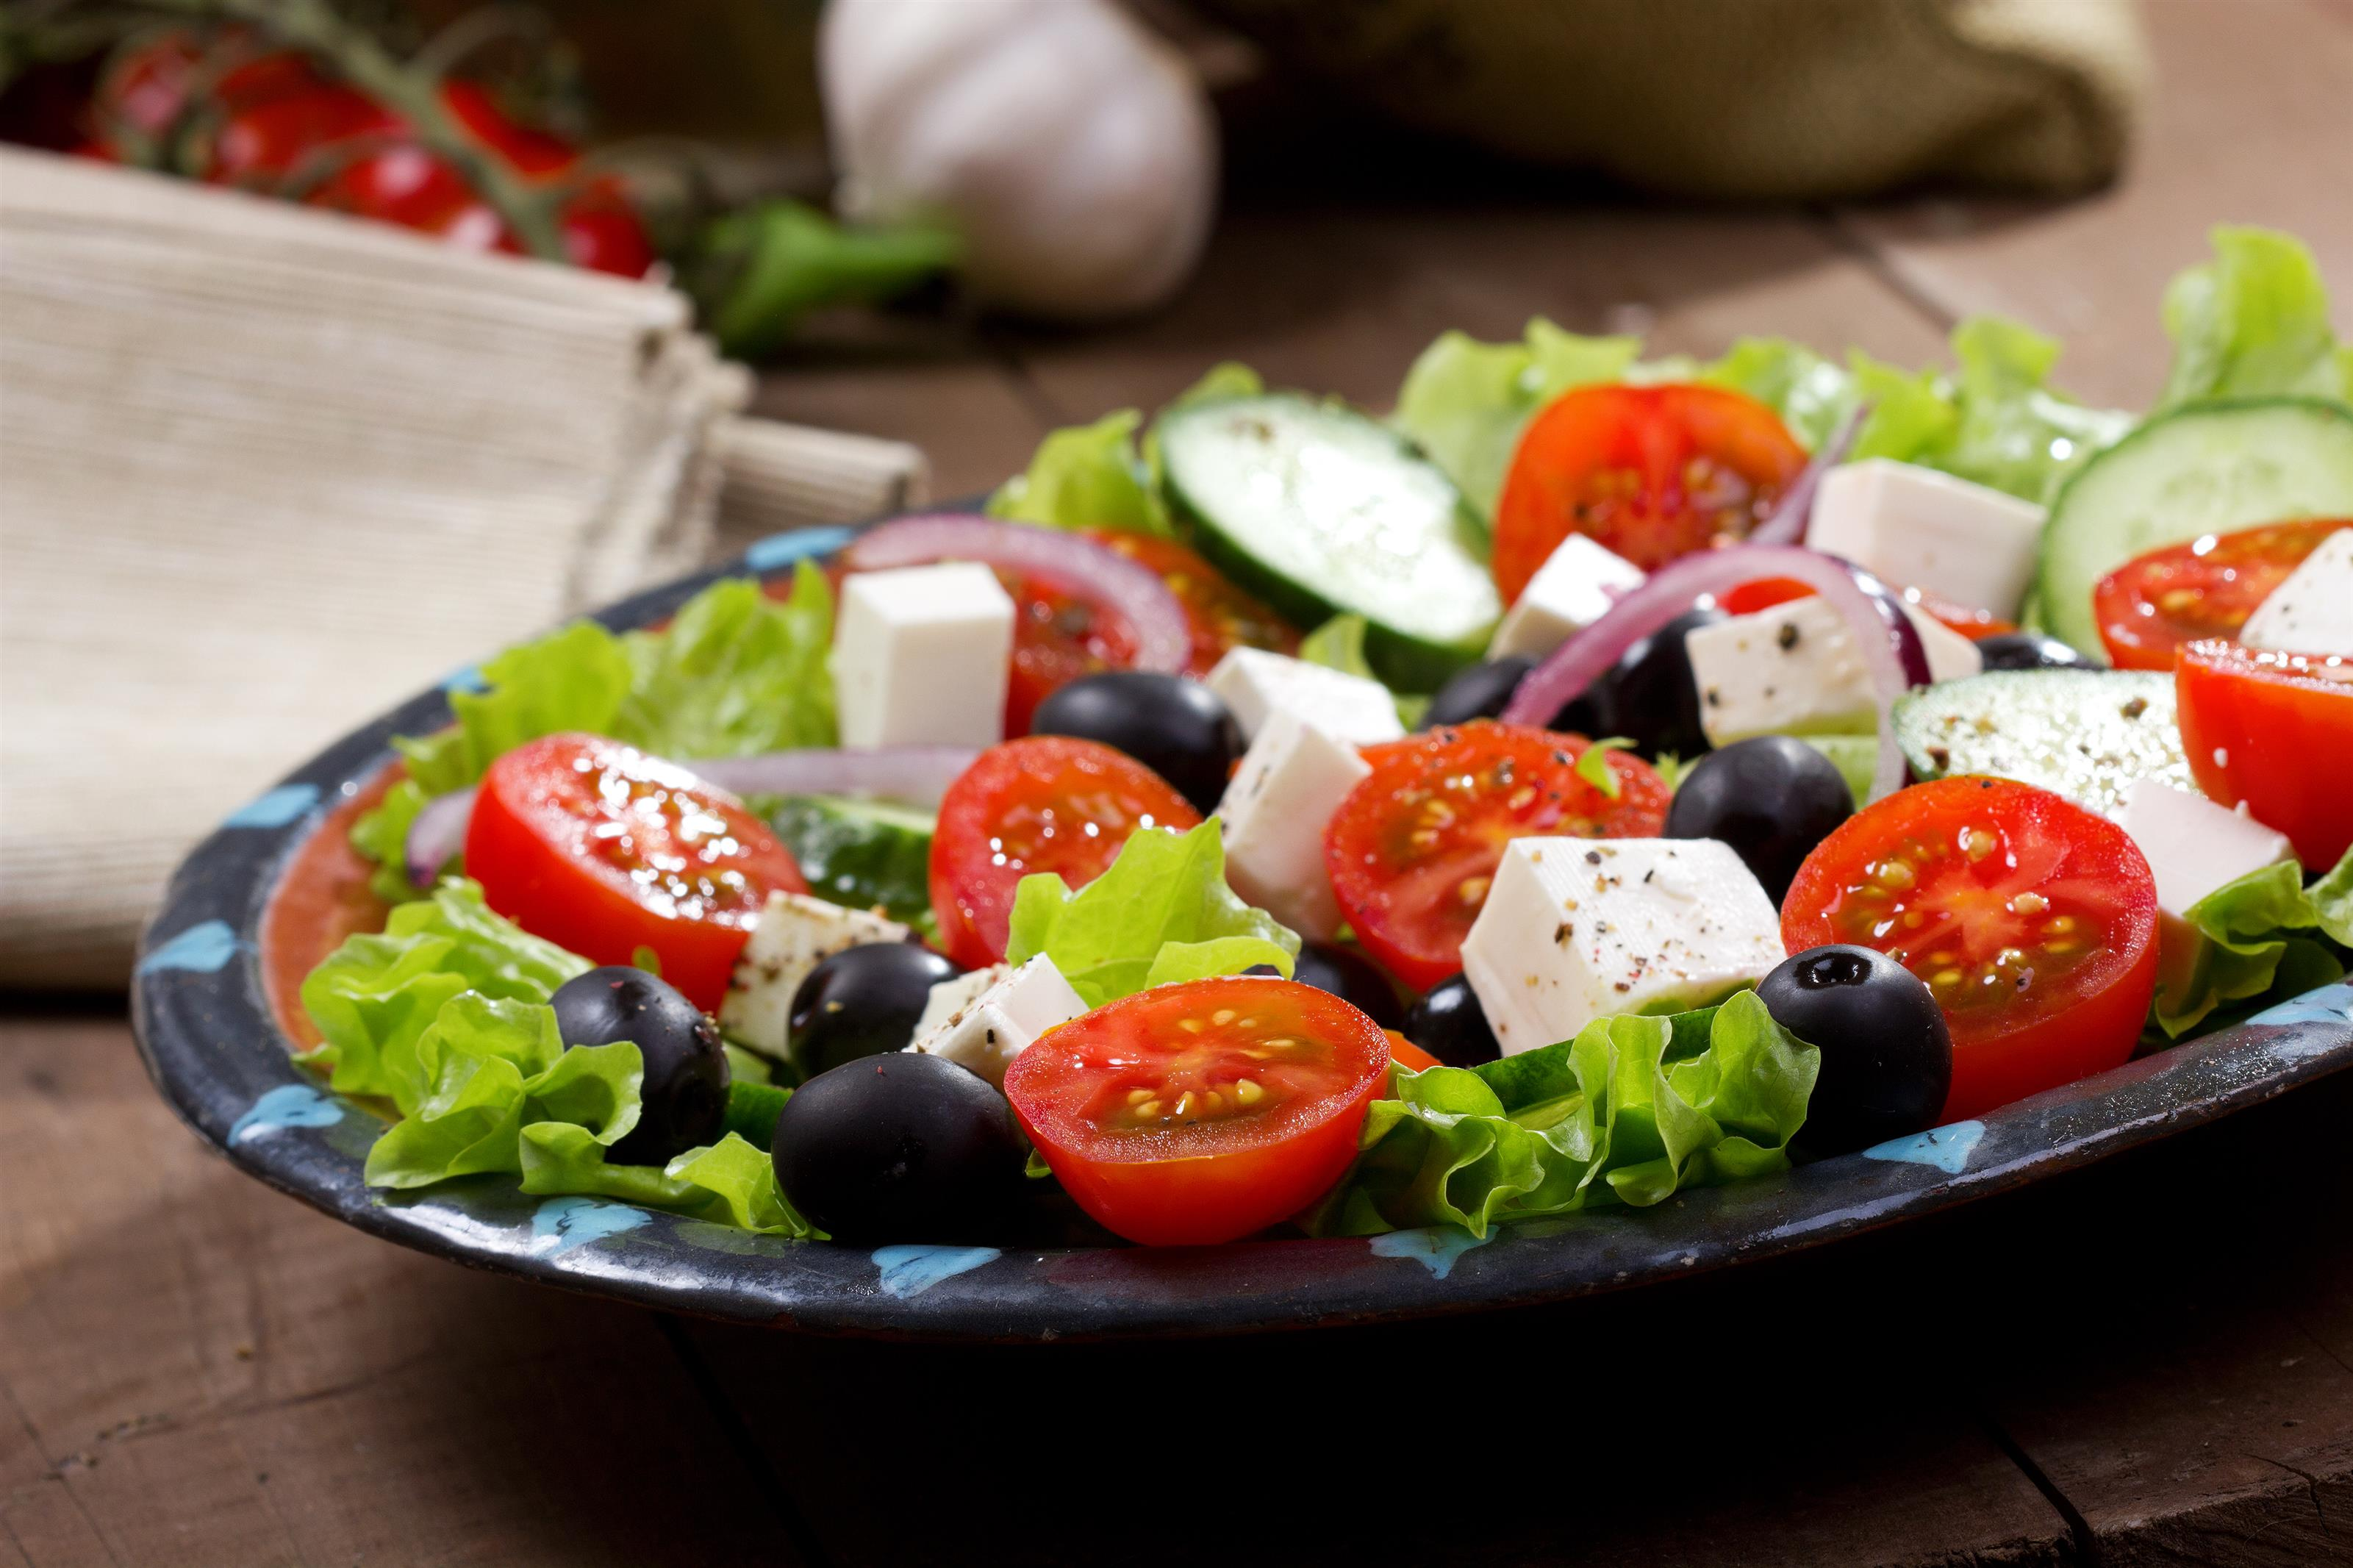 garden salad with lettuce, tomatoes, olives and cheese